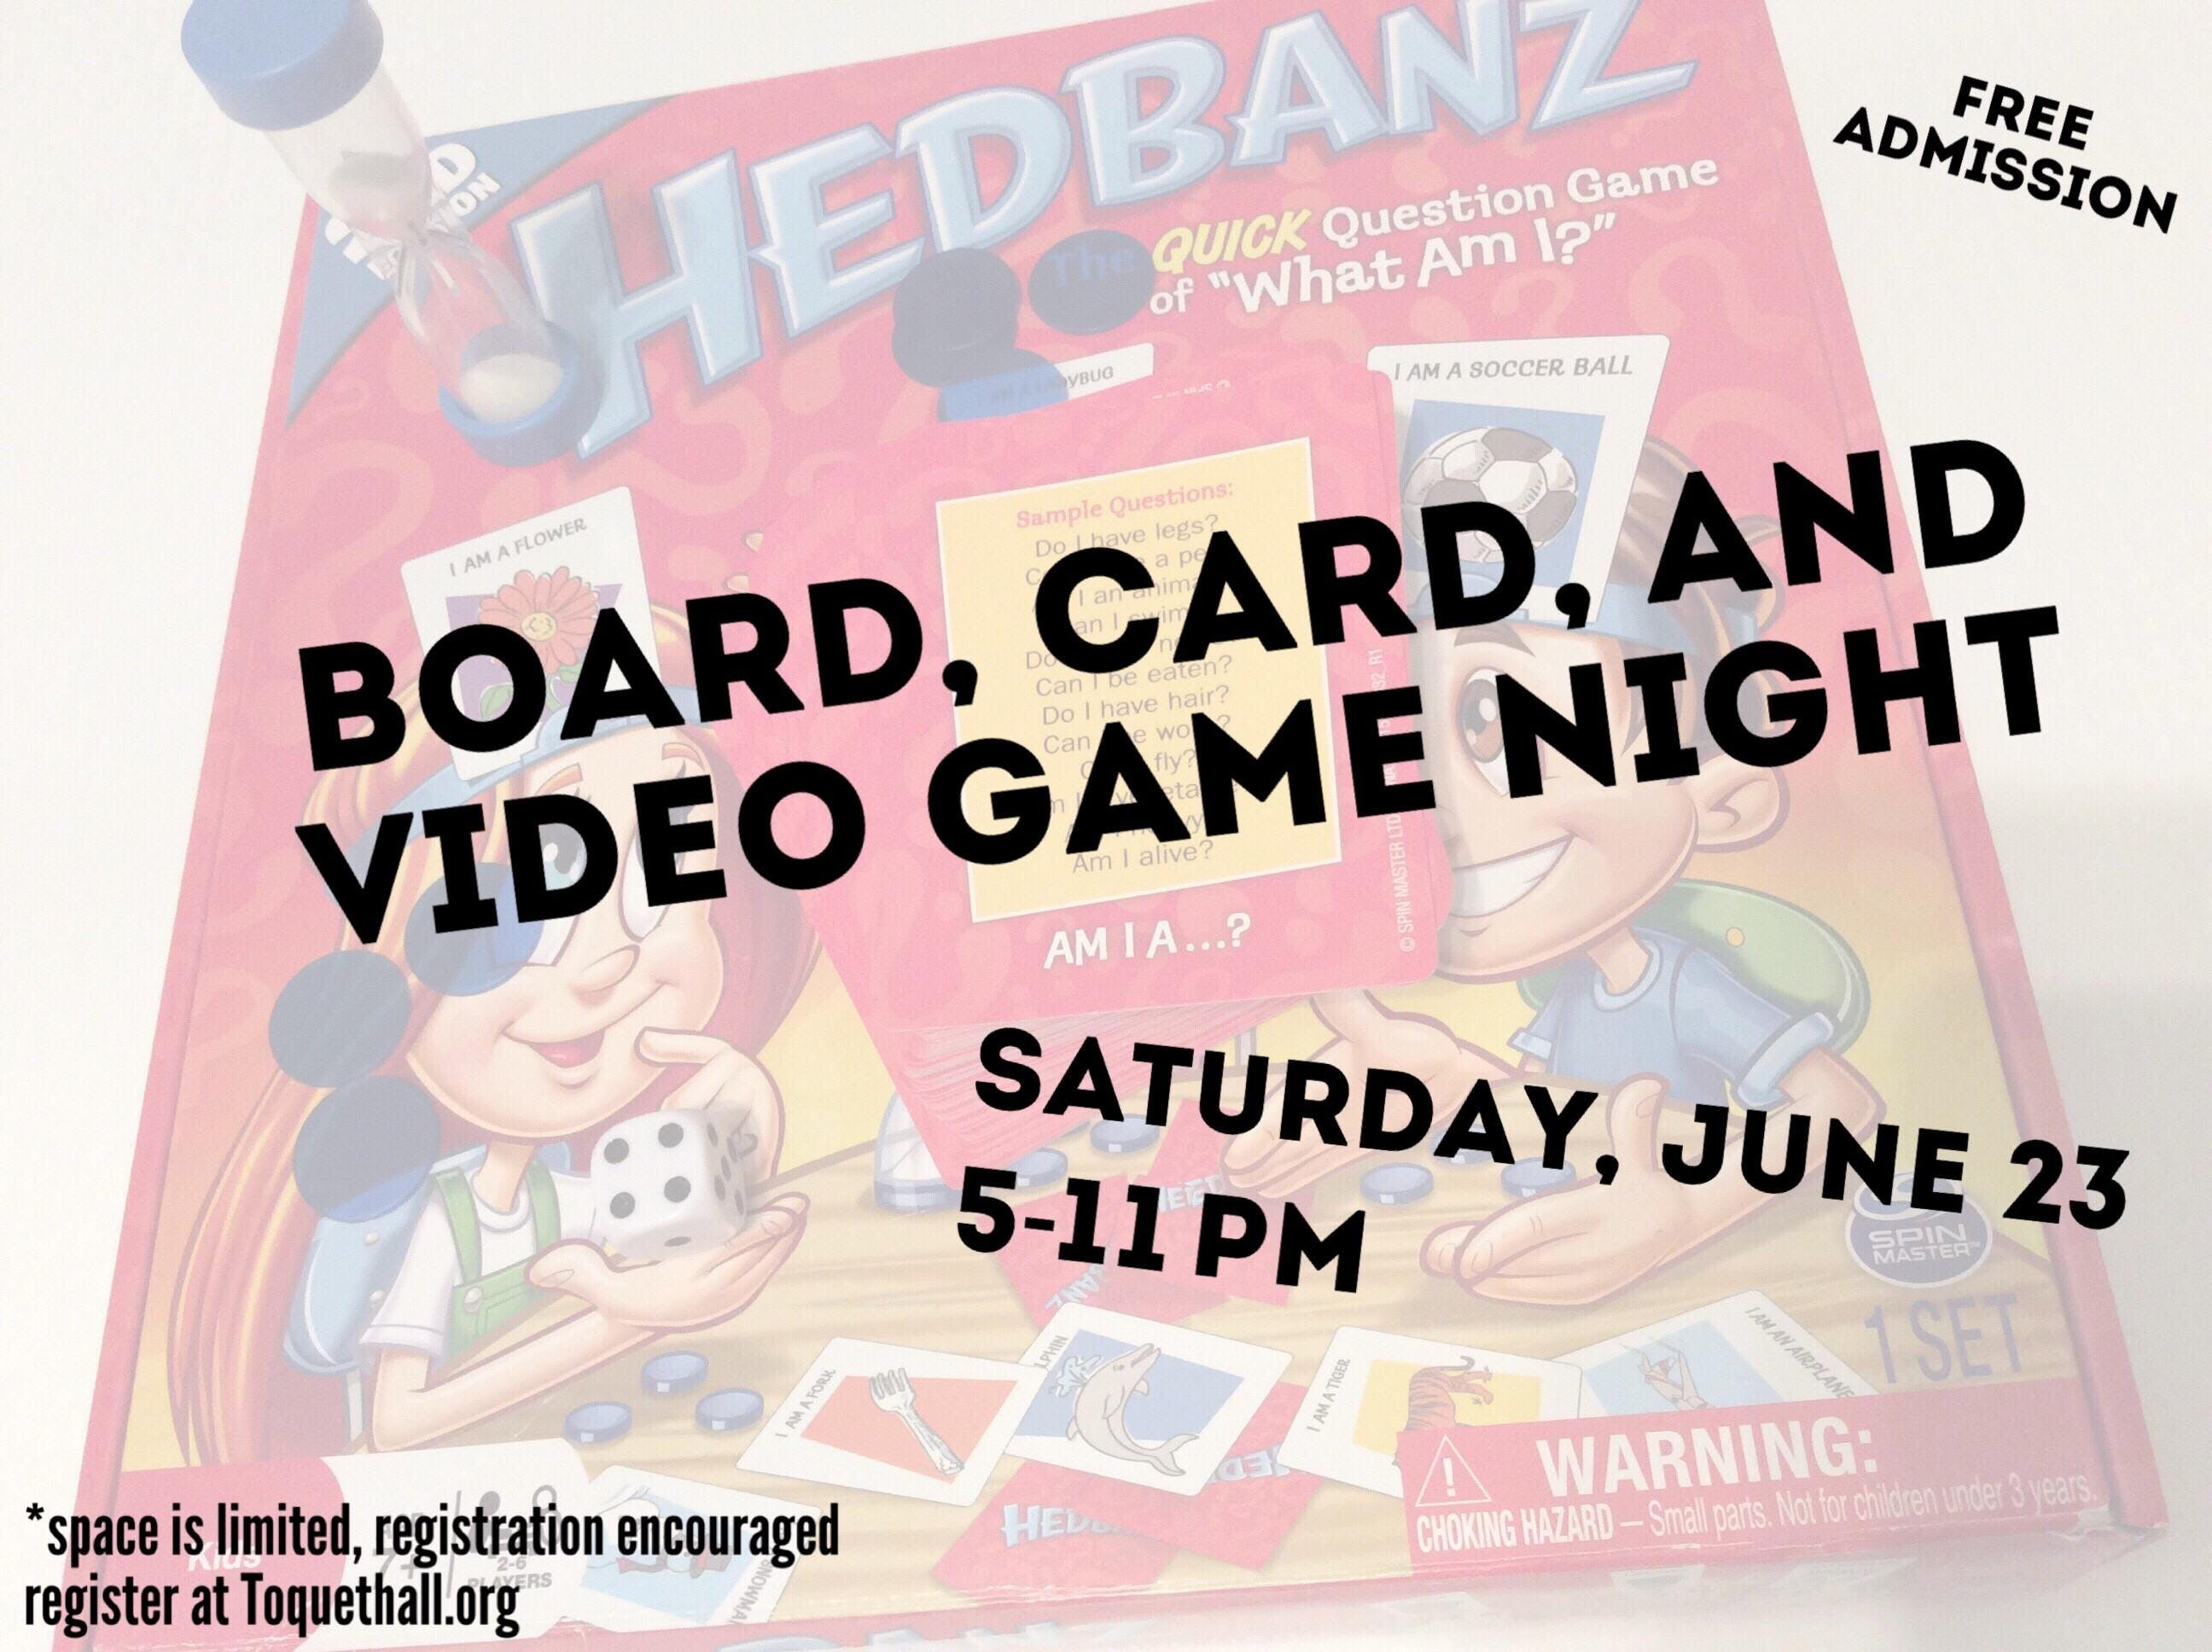 Board, Card, and Video Game Night